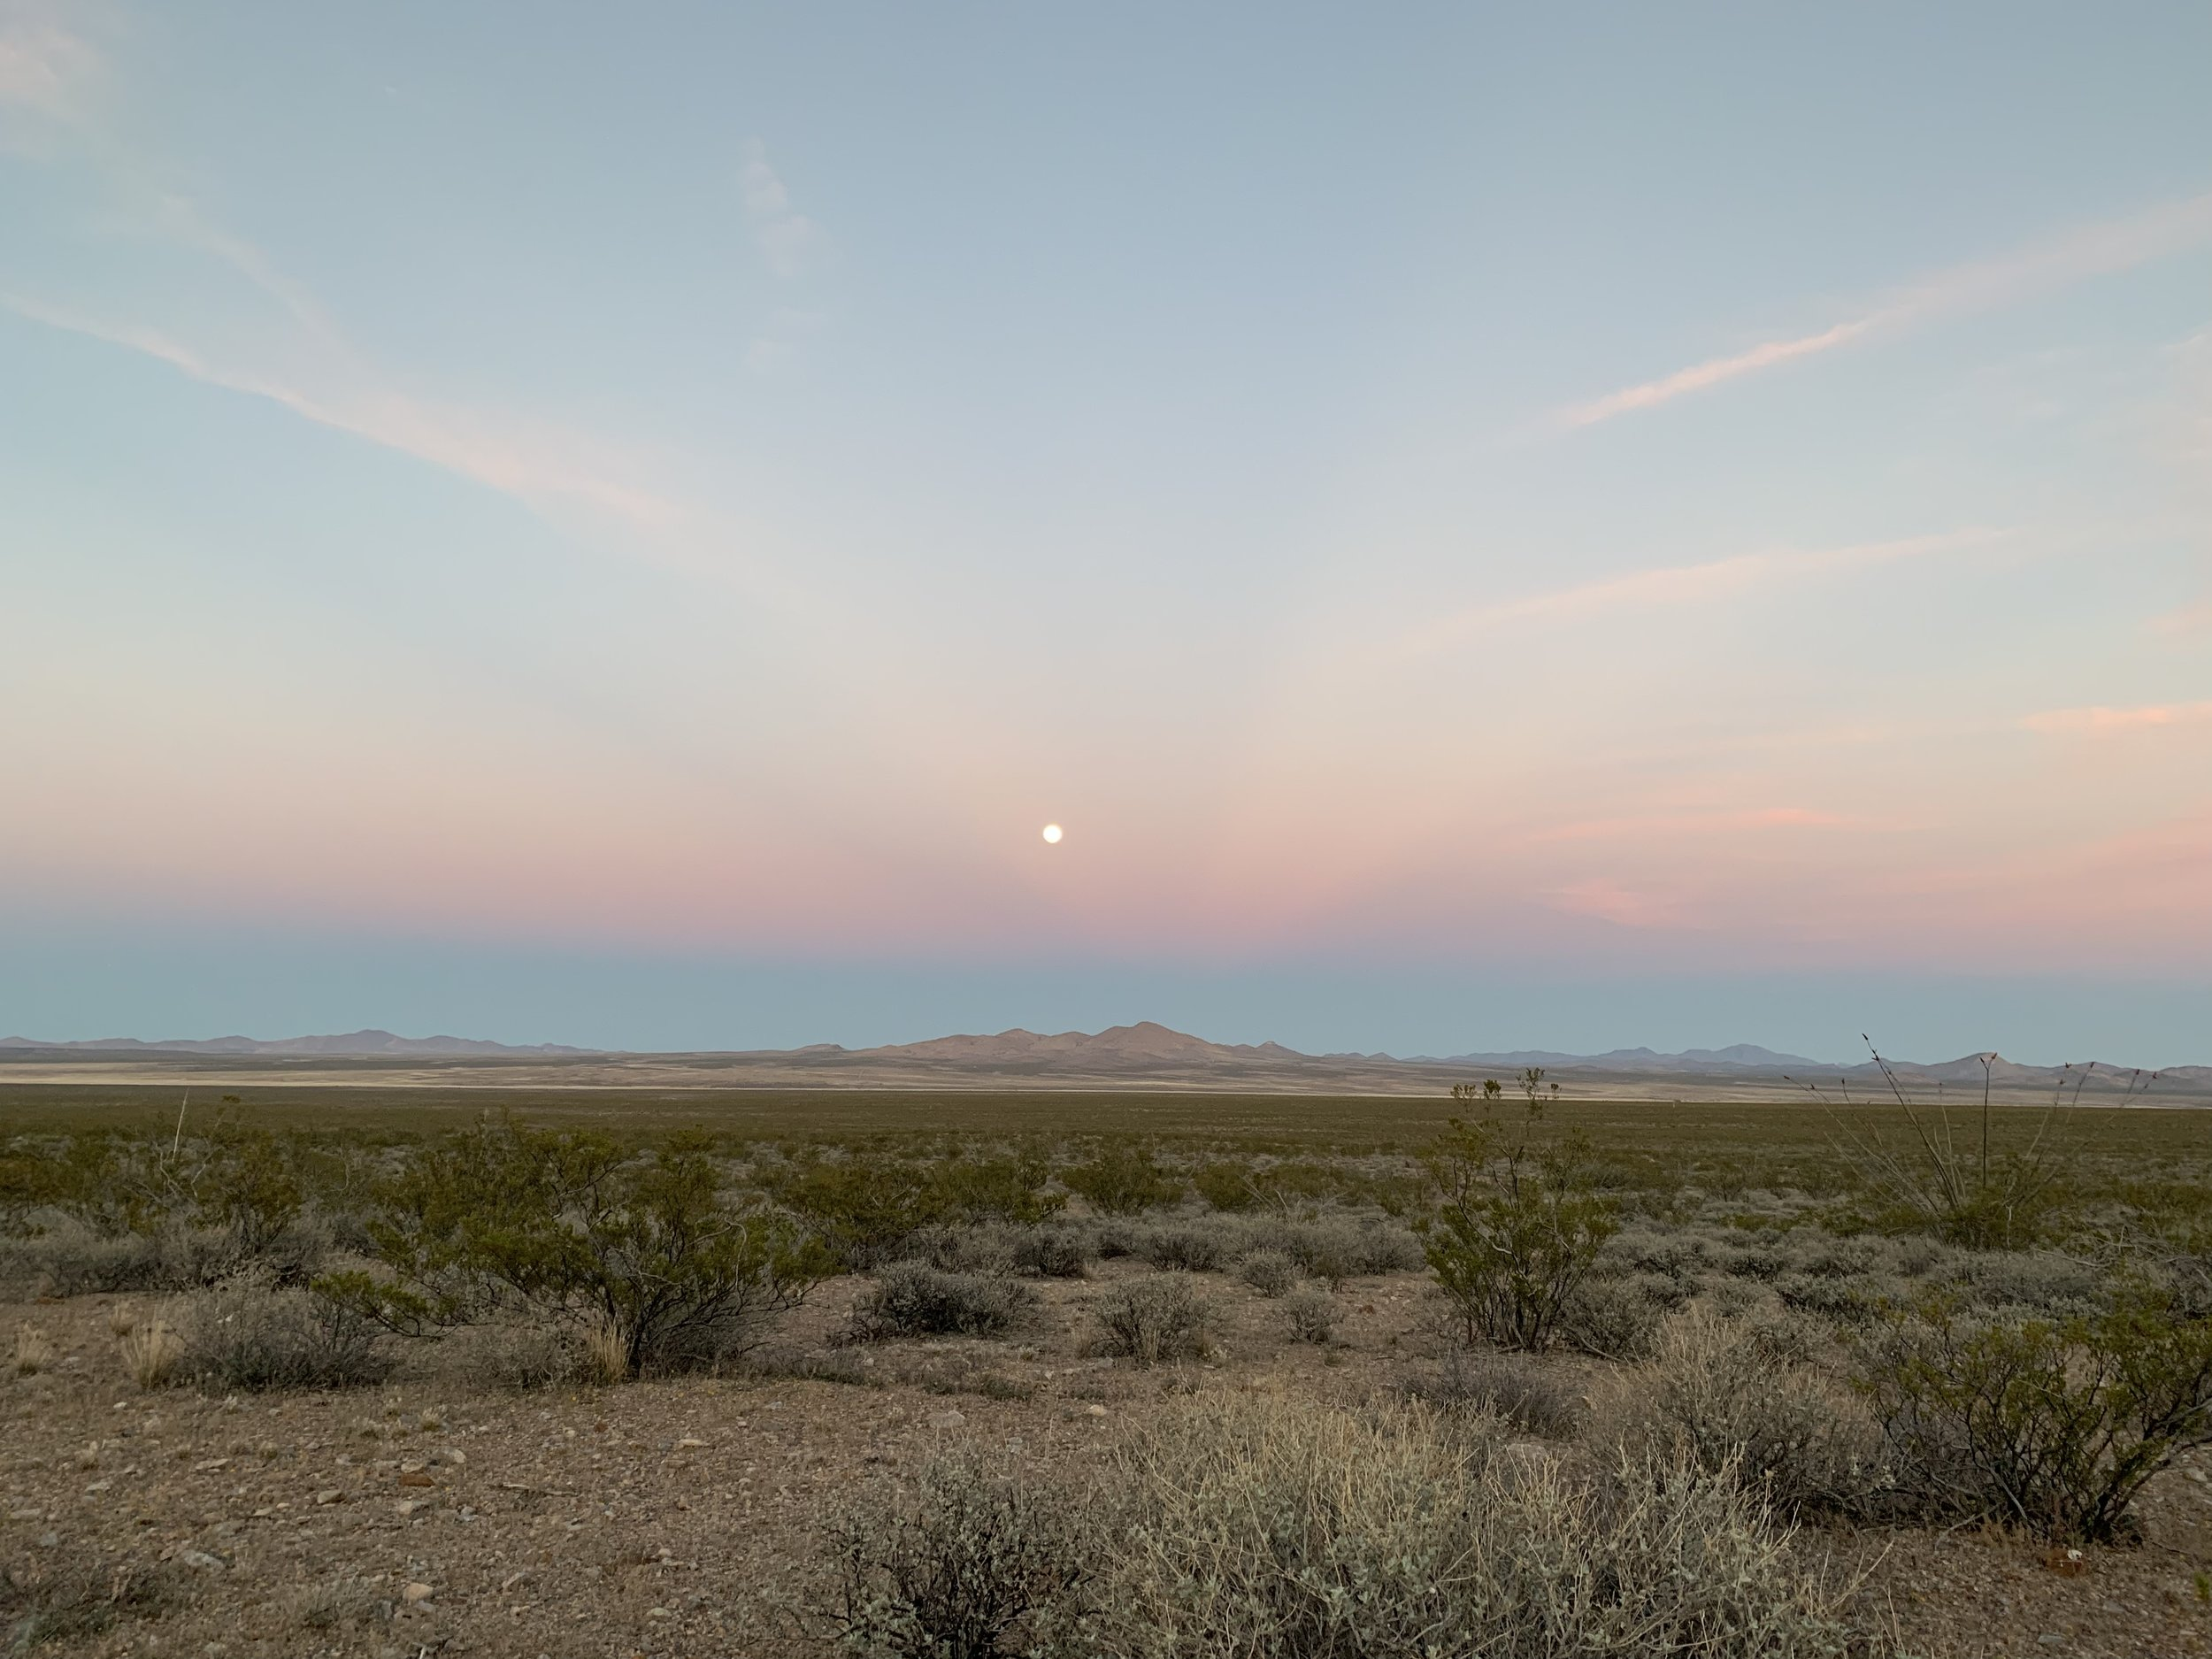 Update 4/21/19 - It's been a good first stretch so far but I've arrived in Lordsburg, NM with plenty of blisters and only a McDonald's for a meal. Yep, I did it. McDonald's. Worth it though, to catch some beautiful views. I wish I was able to accurately capture the stars of the night!